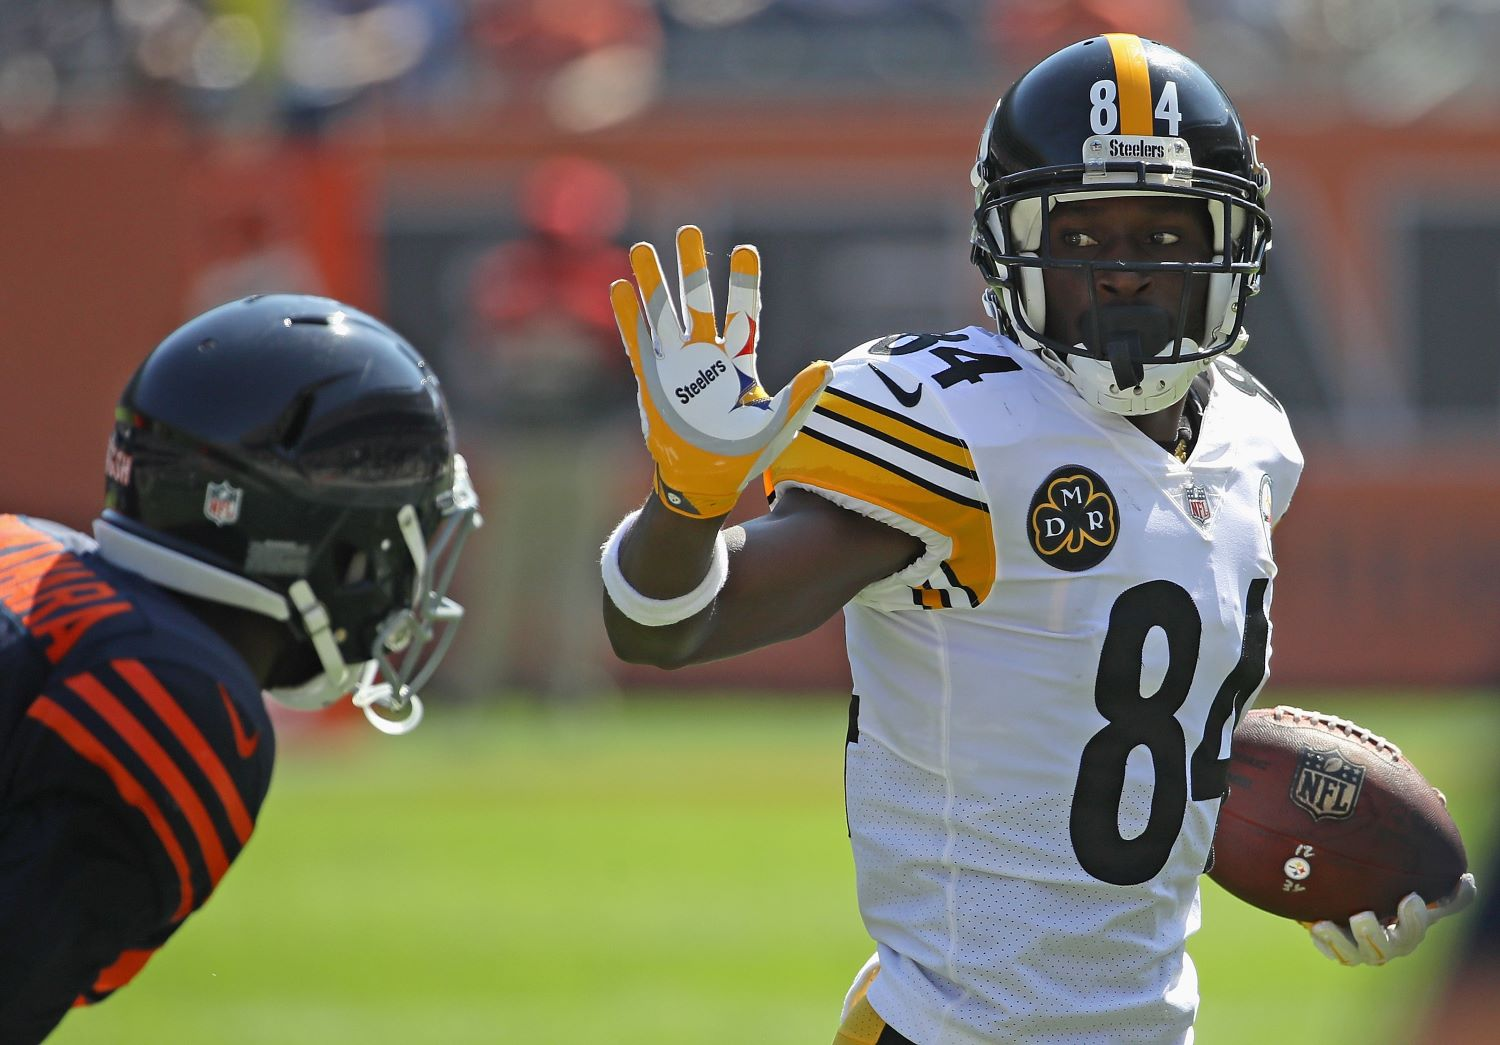 Antonio Brown just sent a clear message about joining the Chicago Bears.